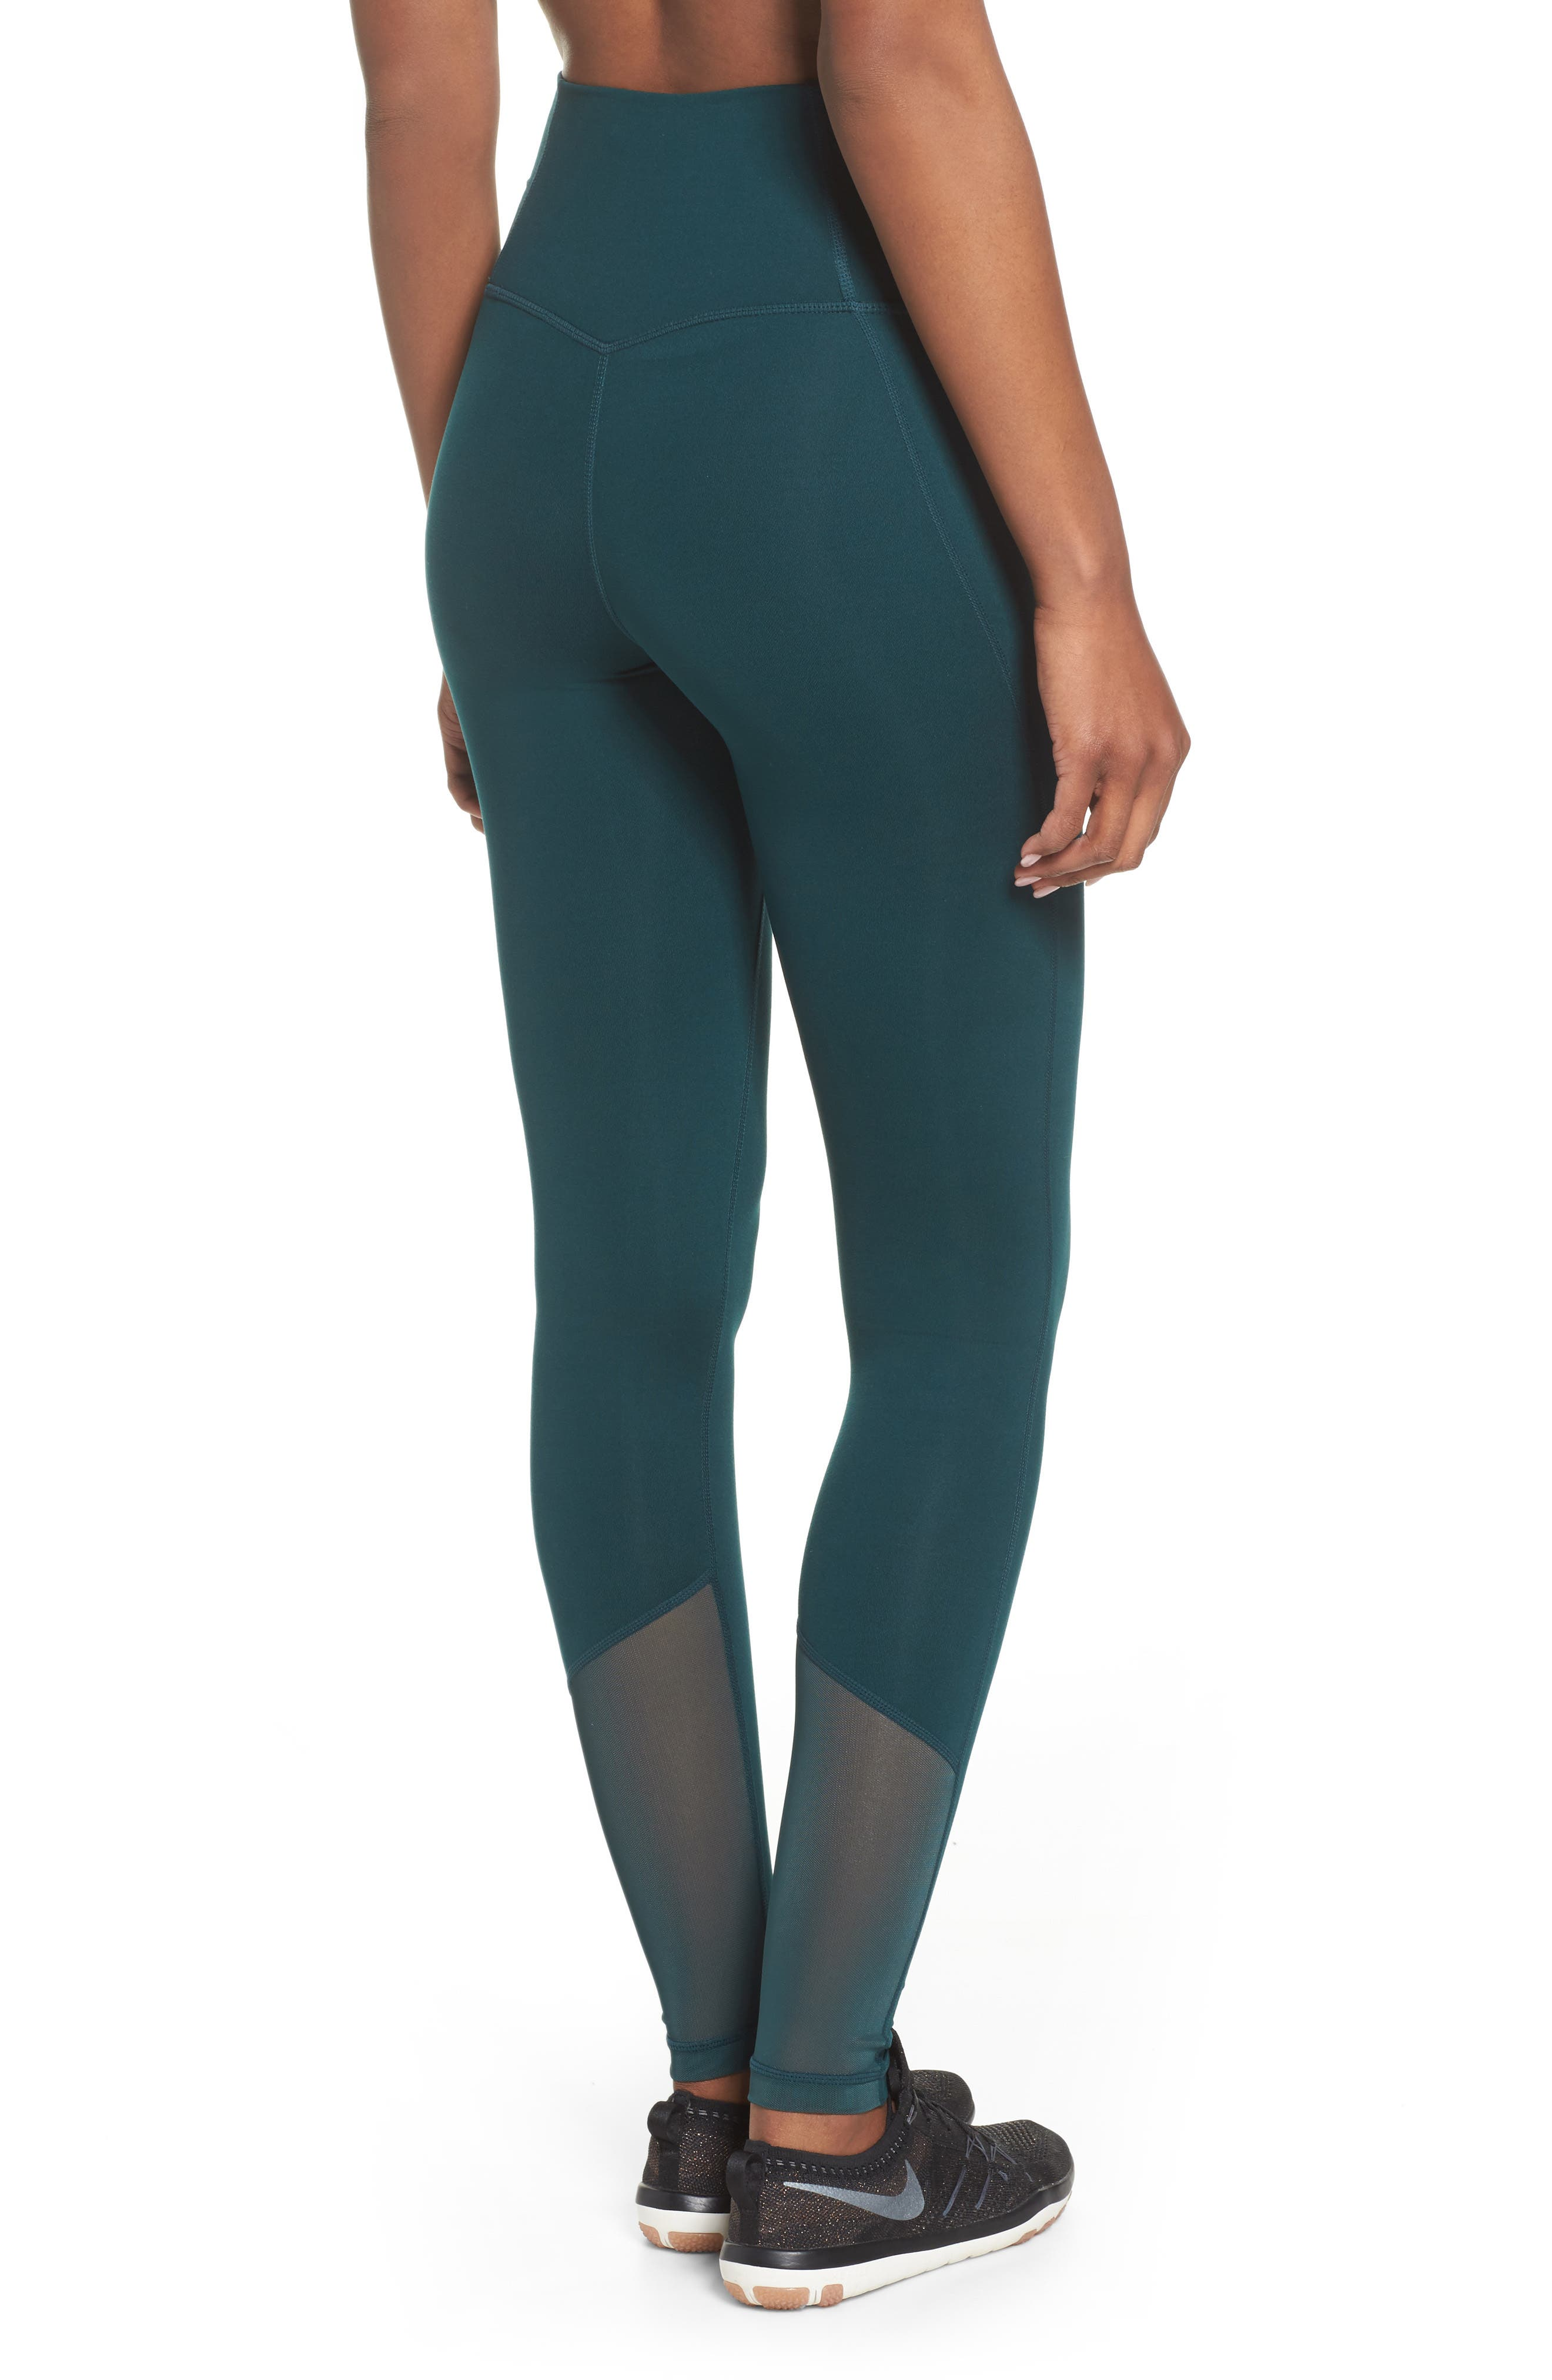 High Waist Asana Light Leggings,                             Alternate thumbnail 2, color,                             301